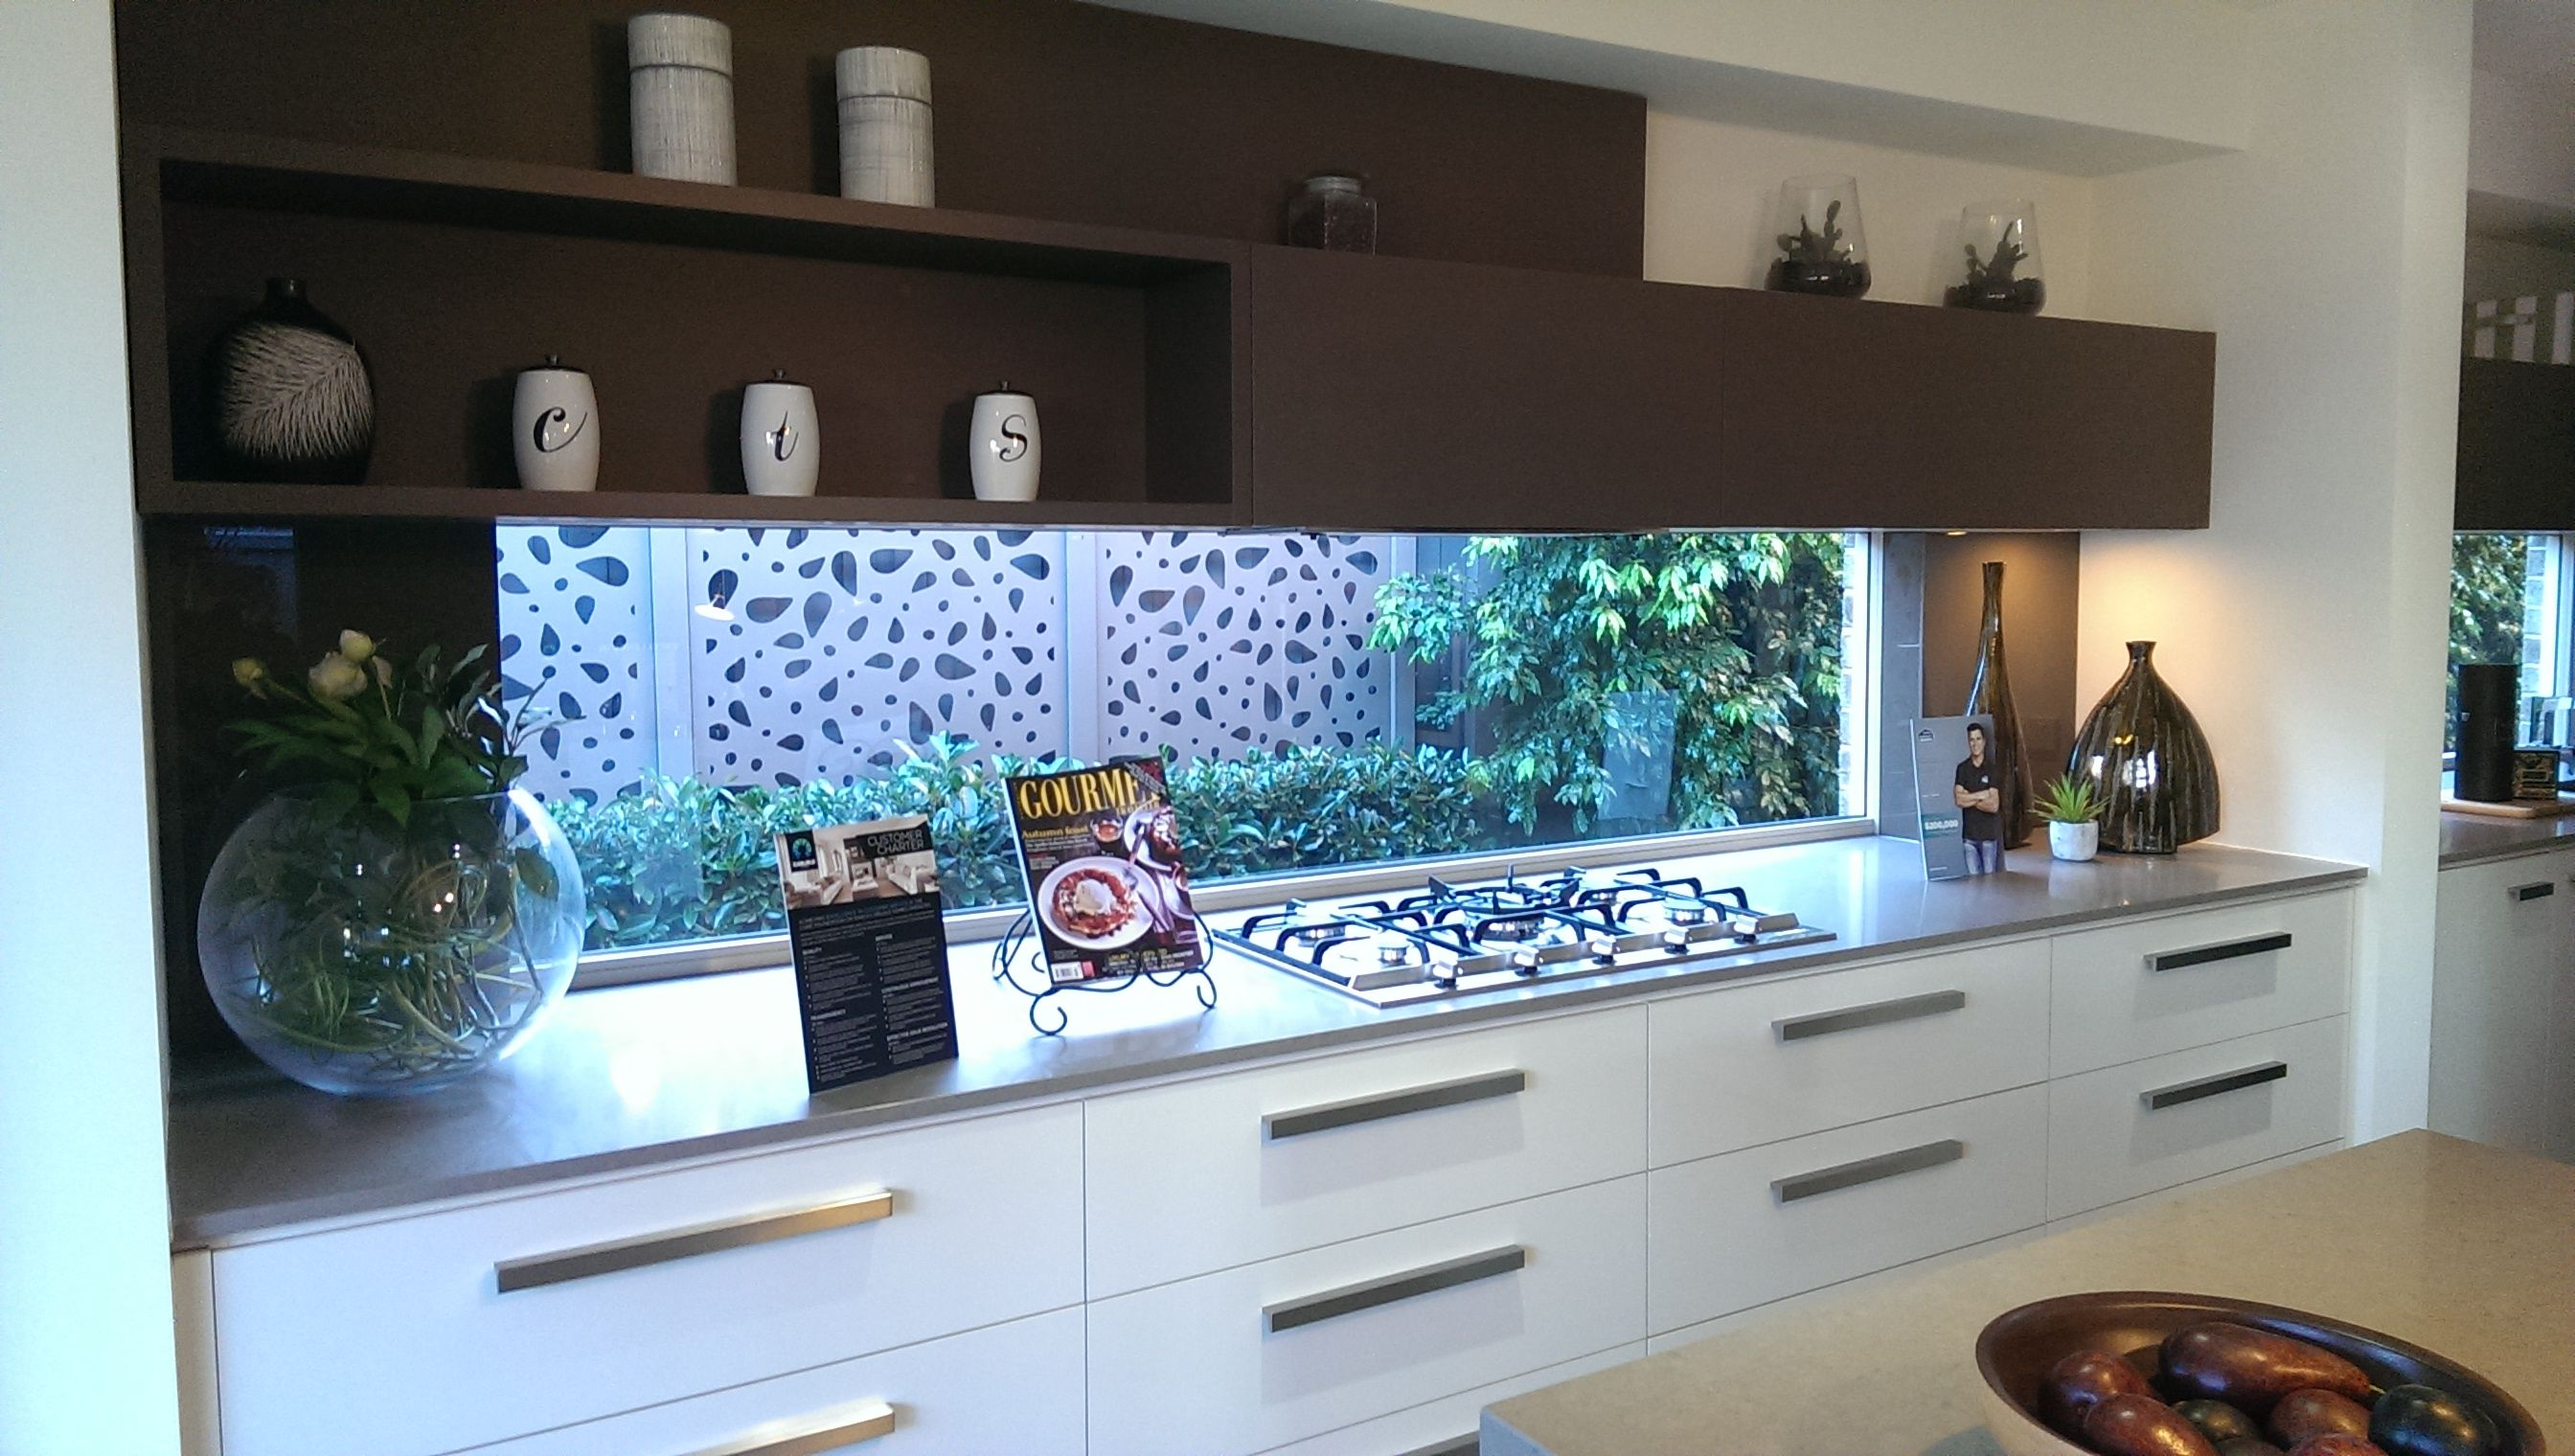 MY PHOTO 4: Laminate display home kitchen. The laminate box floating ...